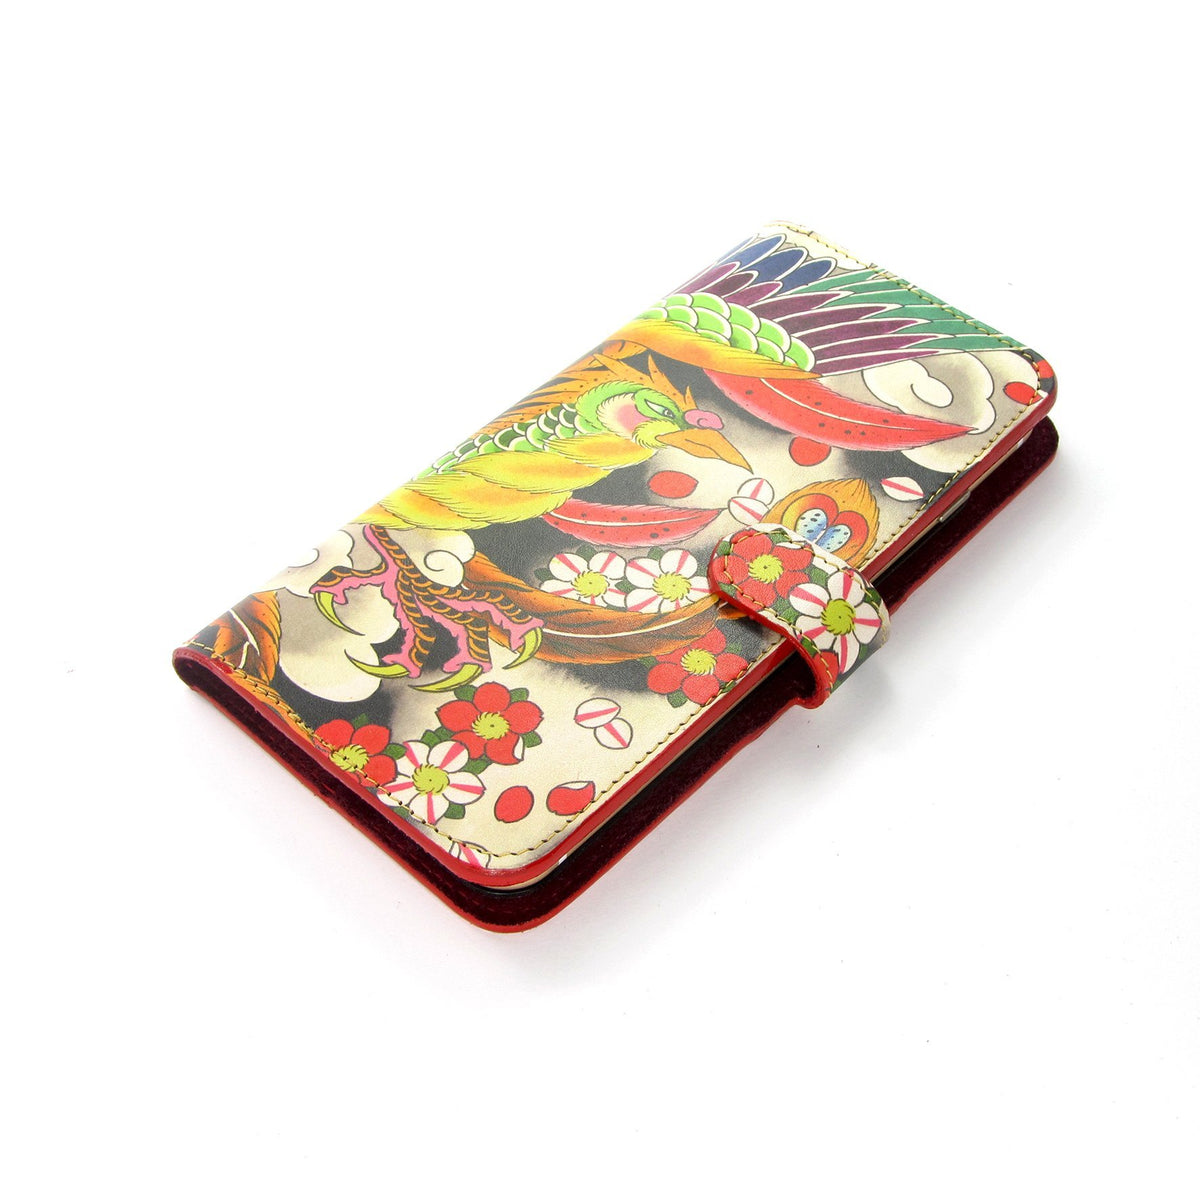 Multi coloured printed leather phone case - brightly feathered bird - leather phone Case - iphone x Phoenix Tattoo case - Bird printed phone case -